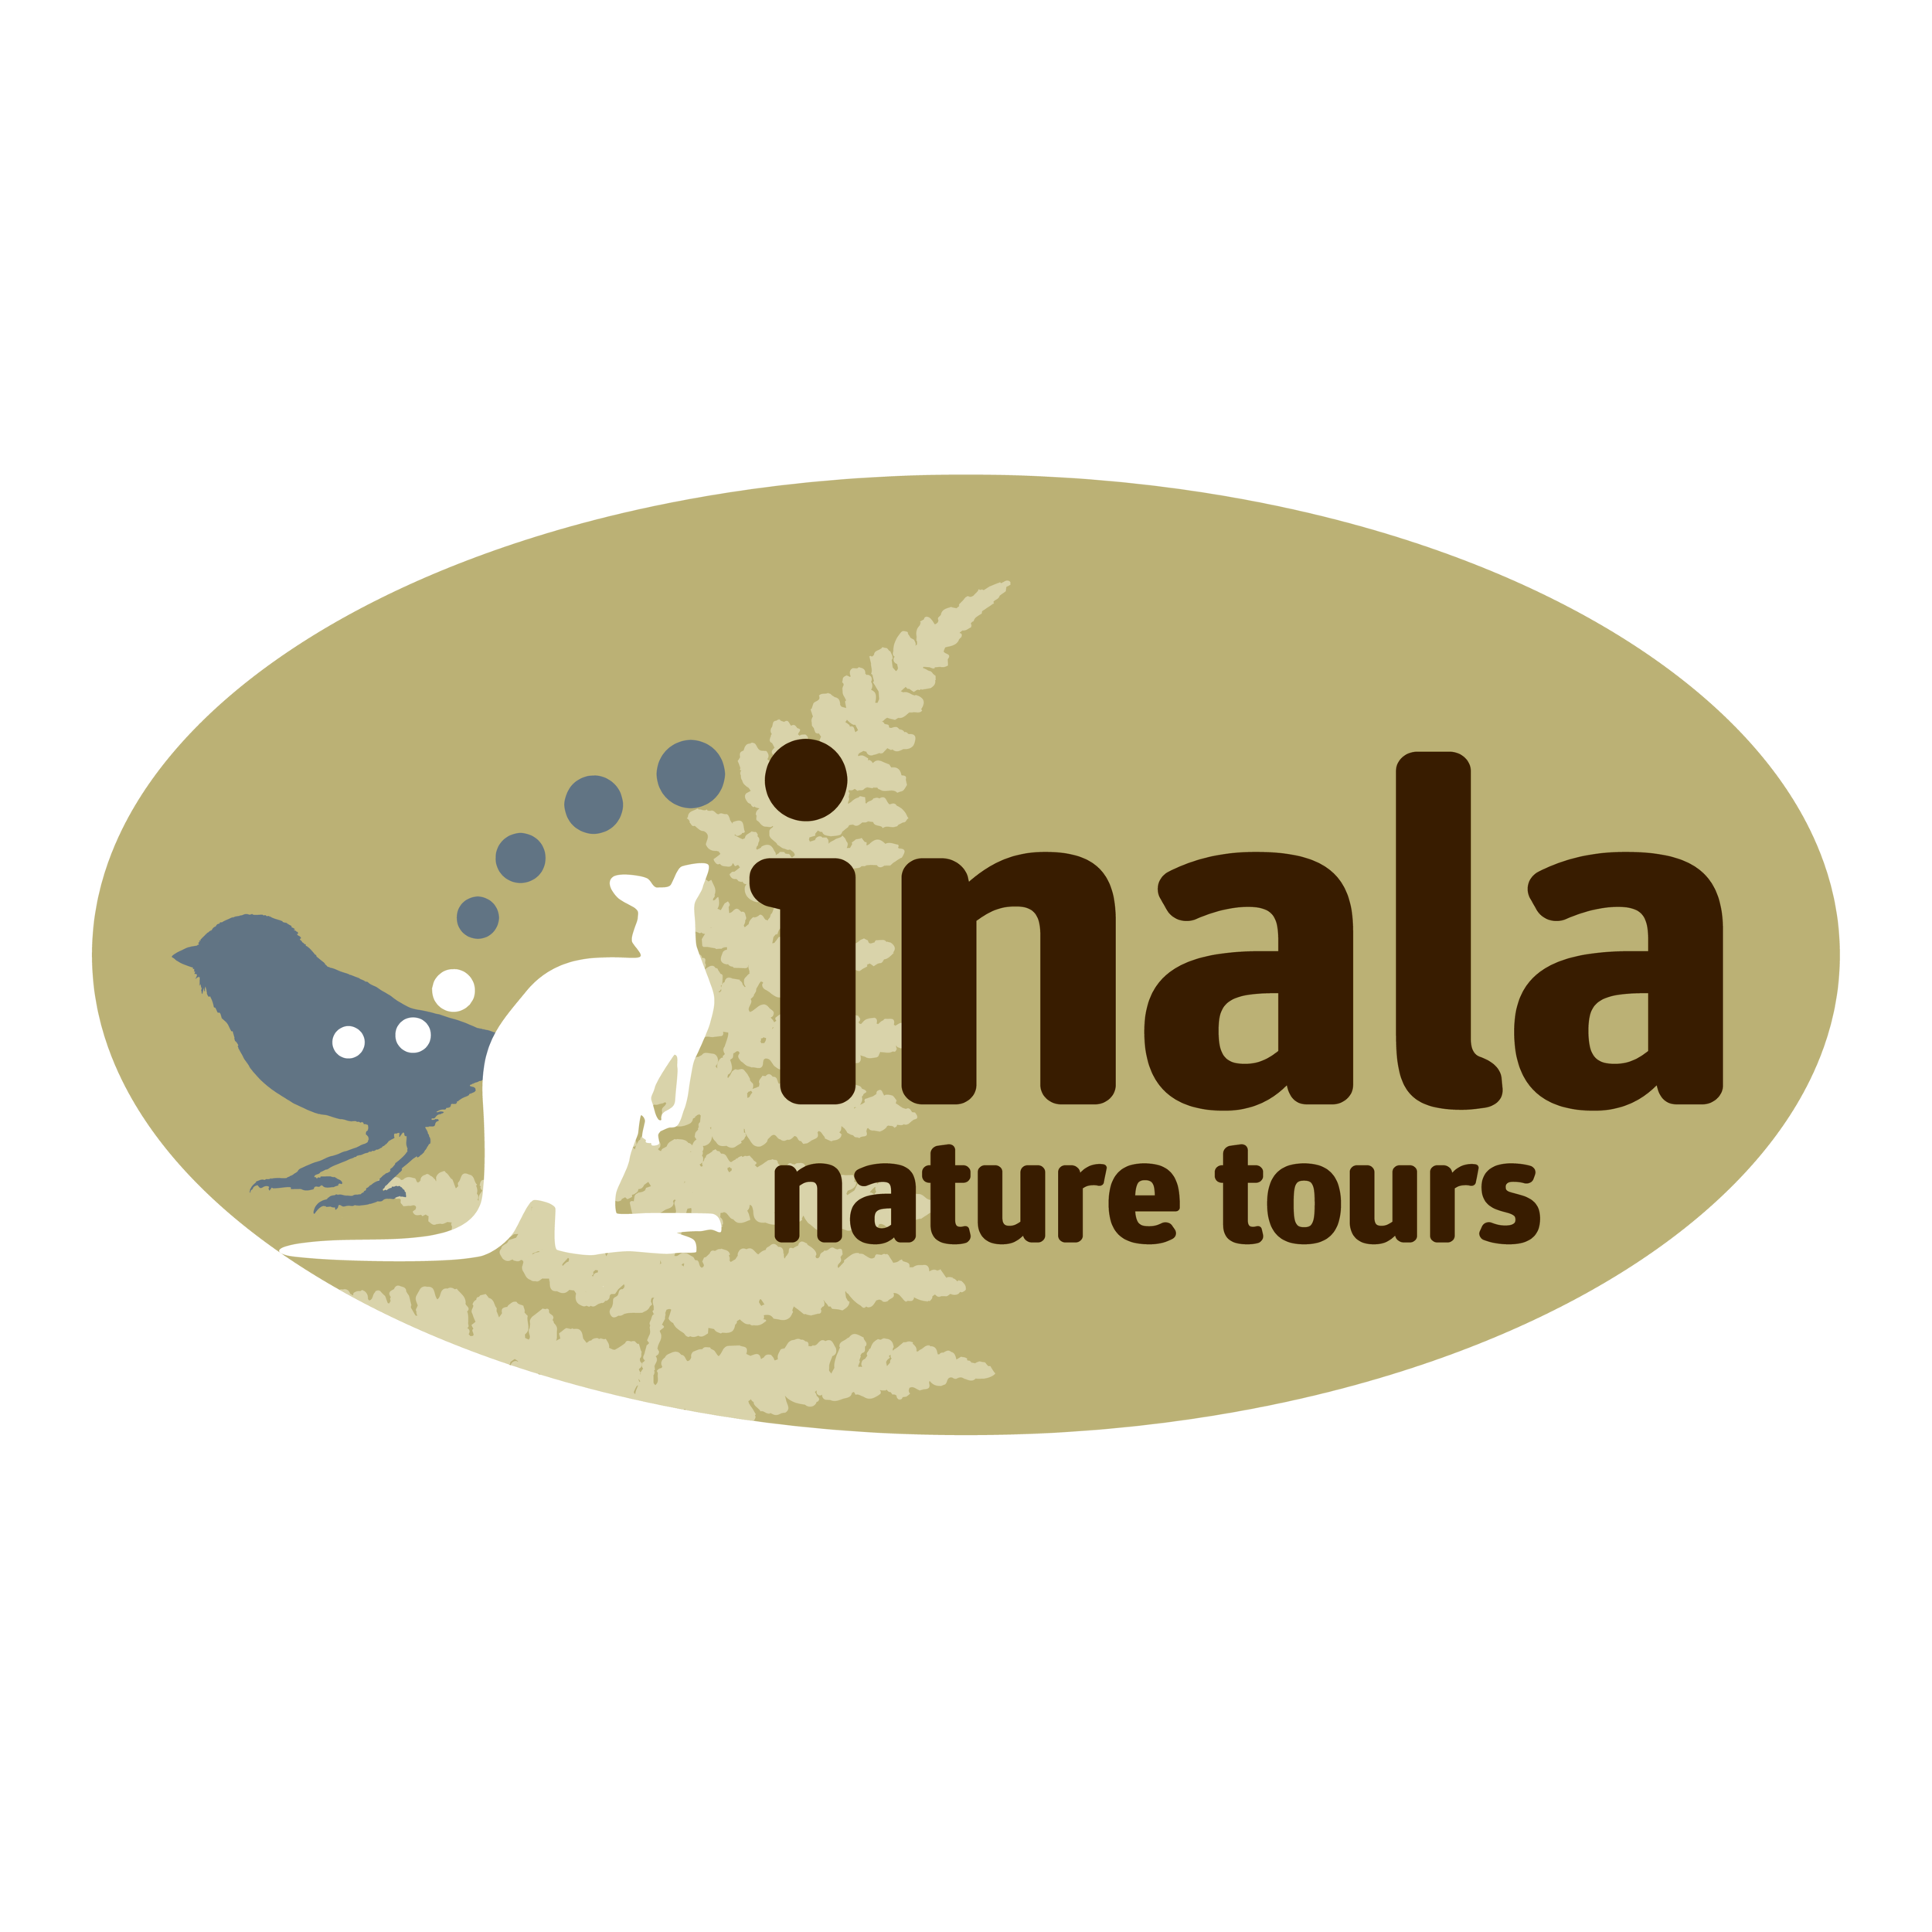 inala nature tours   Inala is an incredible conservation property on bruny island, tasmania. its soon to be home to the first one way glass raptor hide in australia!  ownded by the wonderful tonia cochrane, we can't wait to be there in july 2018!